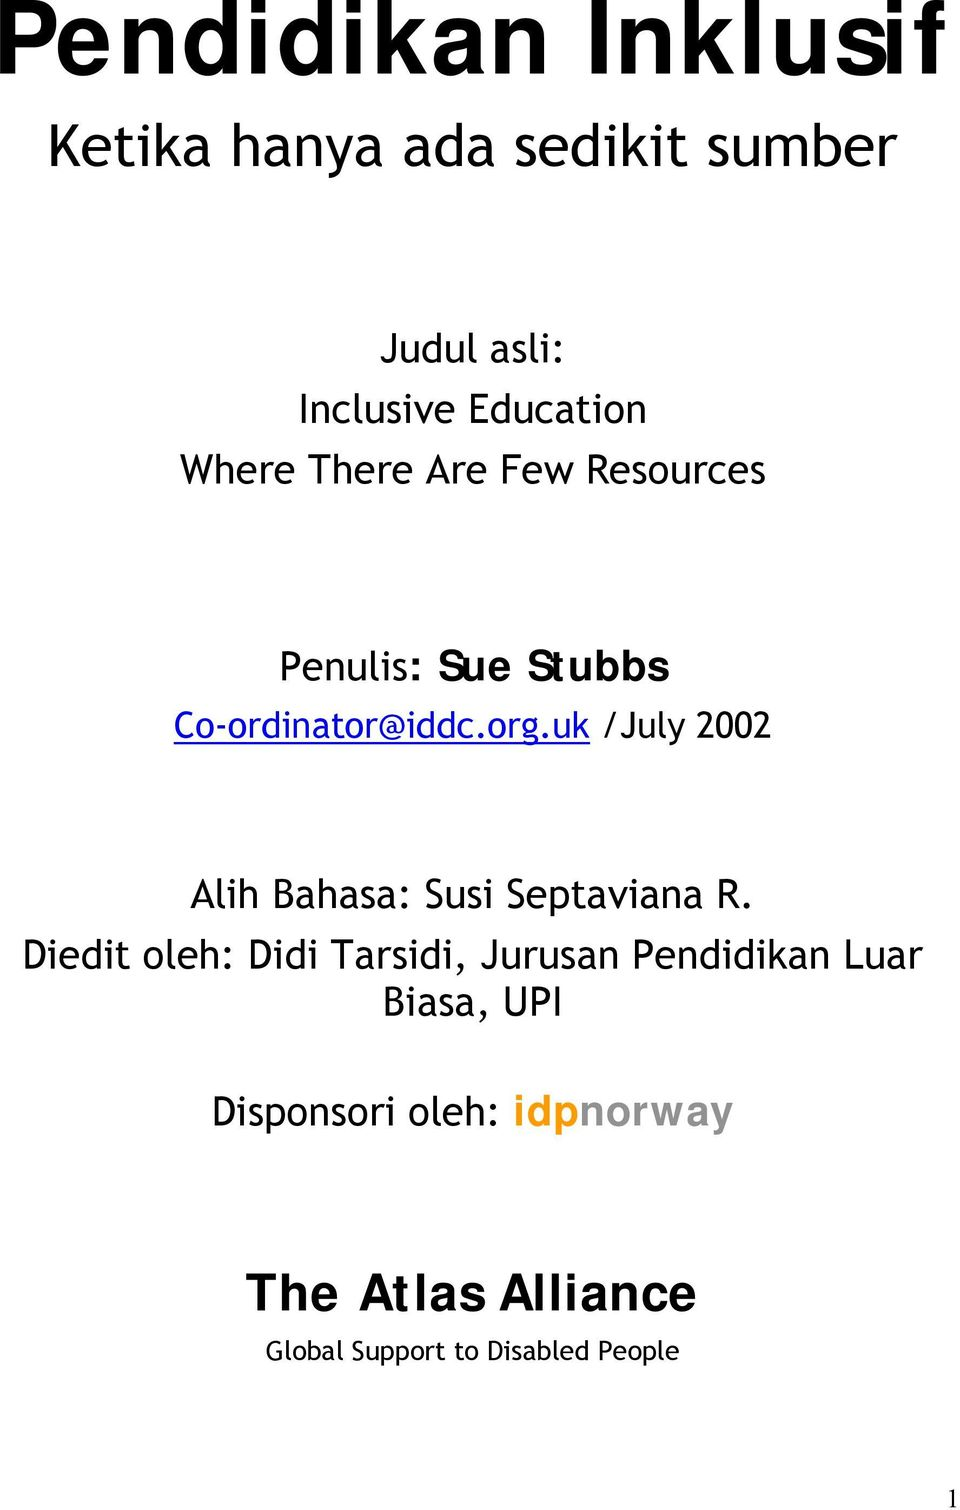 uk /July 2002 Alih Bahasa: Susi Septaviana R.